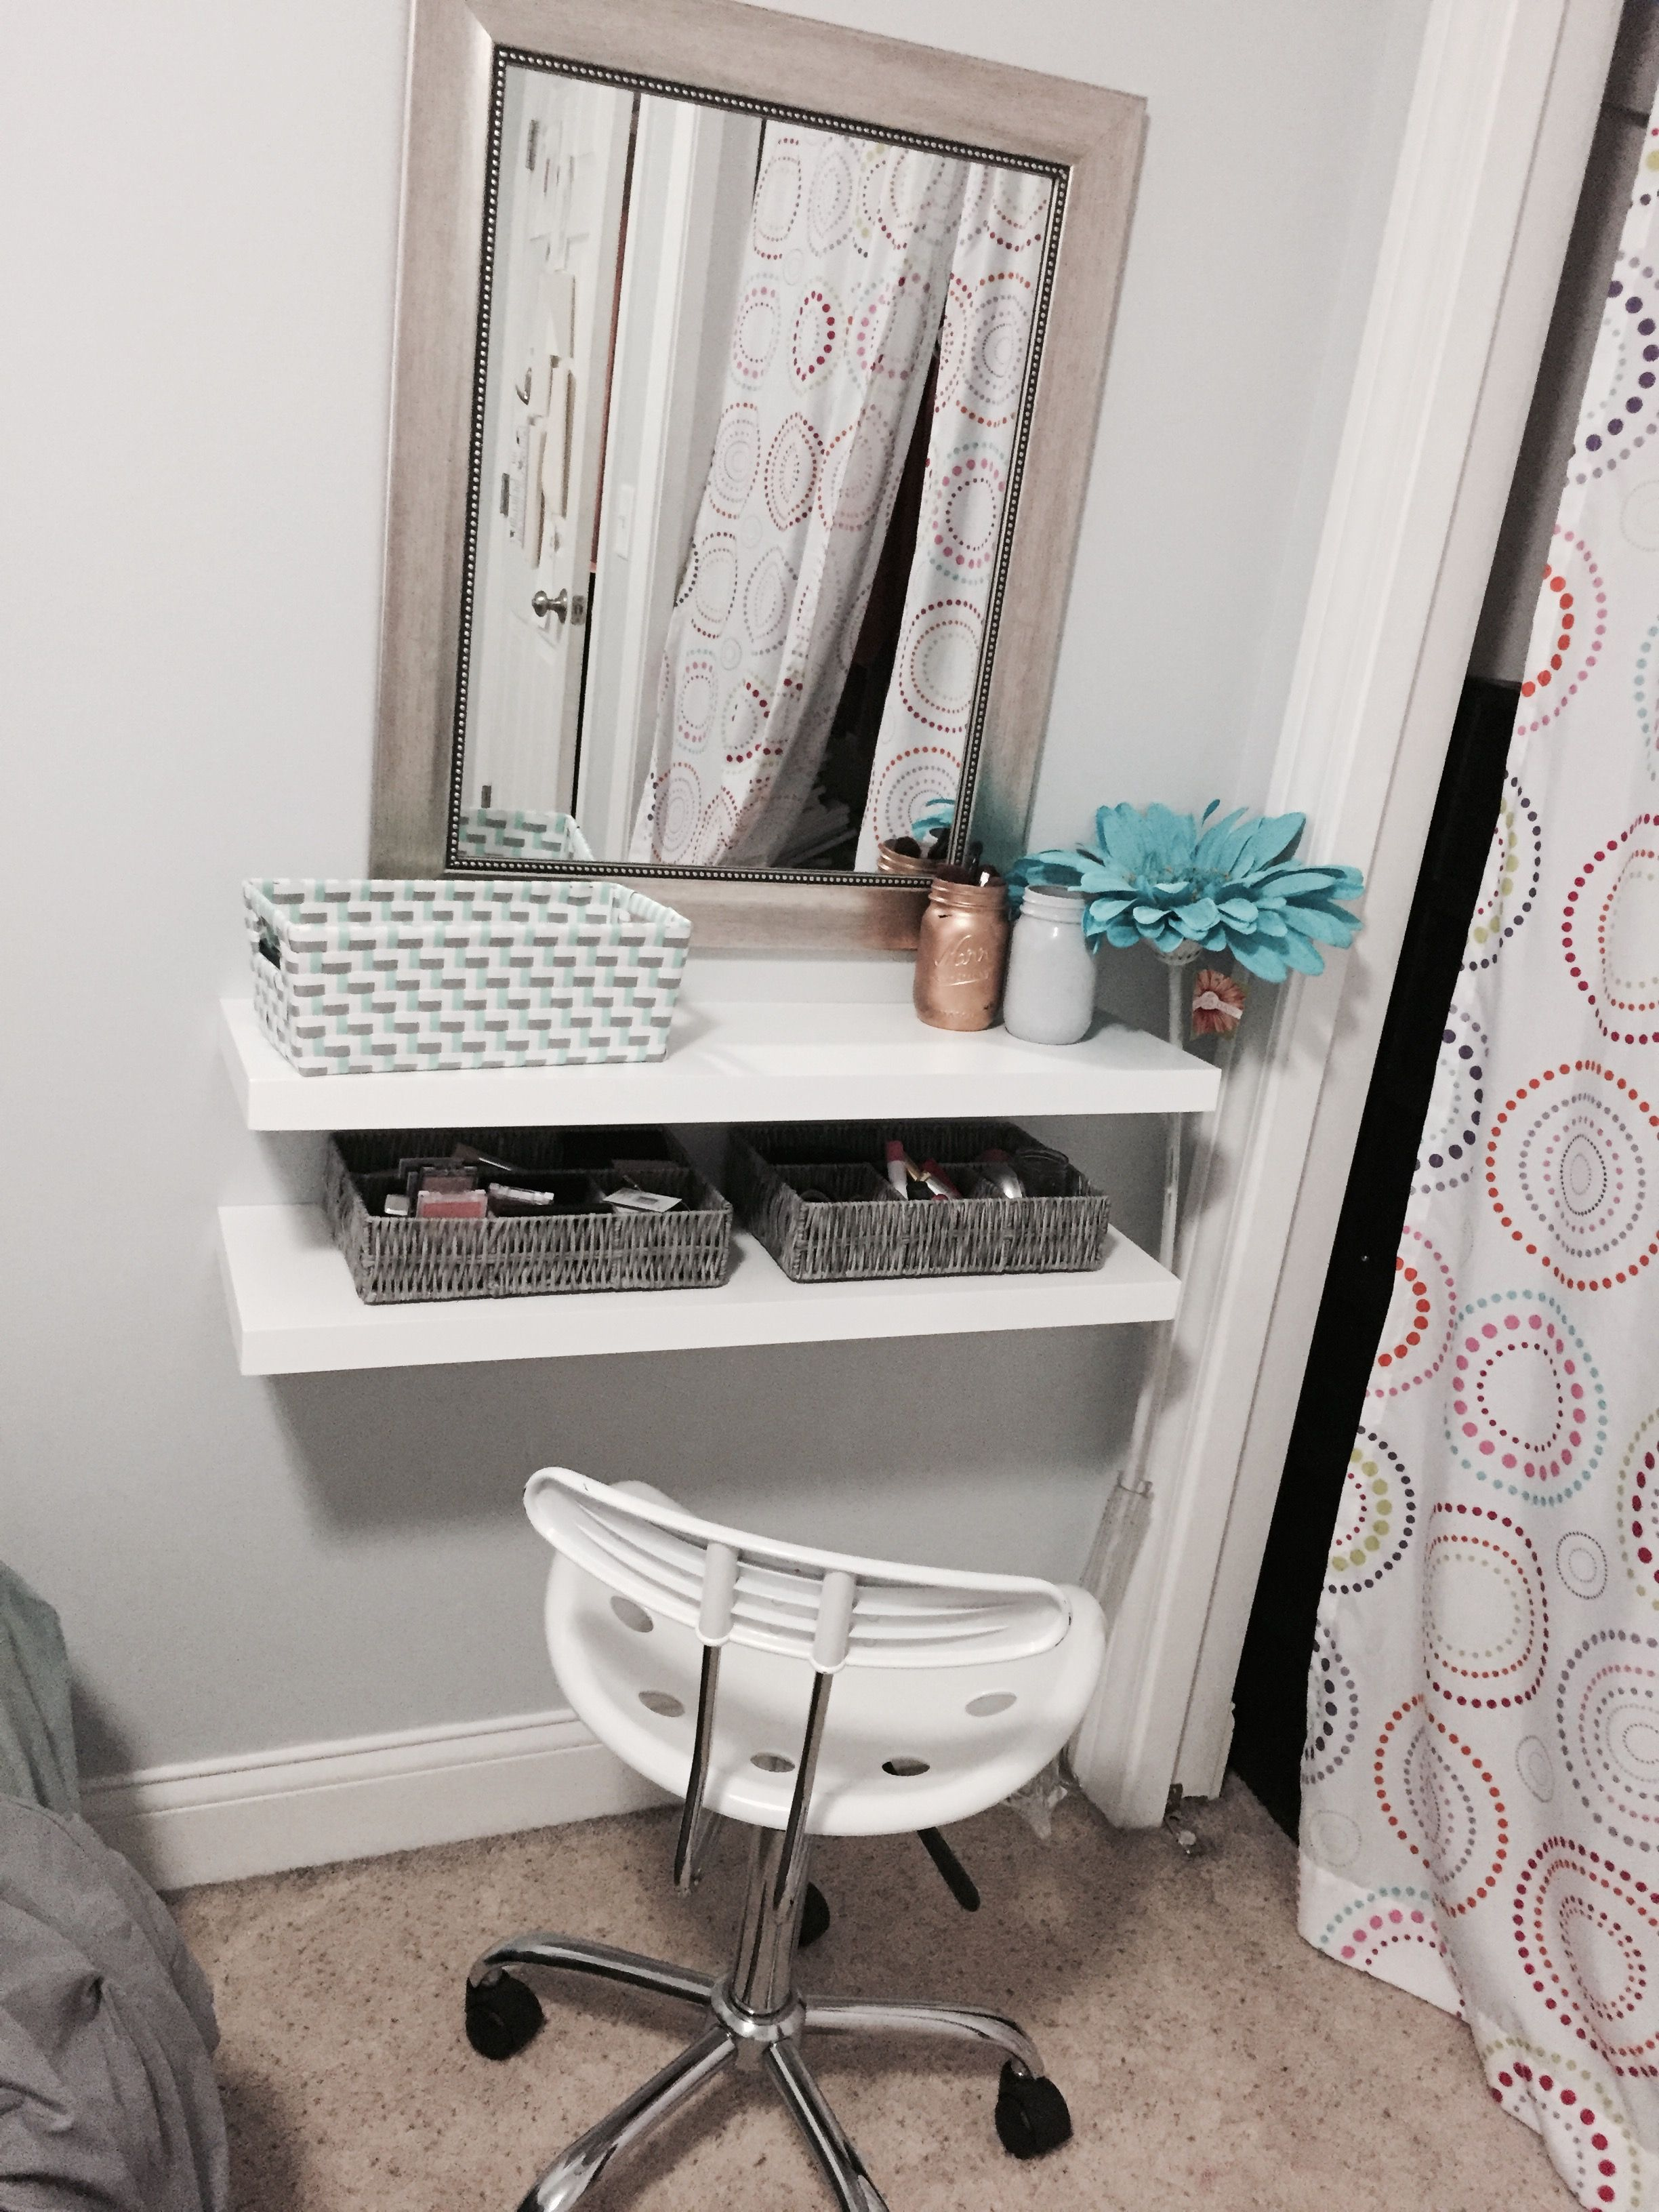 diy floating shelves makeup vanity room decor shelf heavy duty garage storage ikea lack bracket bookshelf gun cabinet shelving unit cover bathroom with open entryway hanging wall